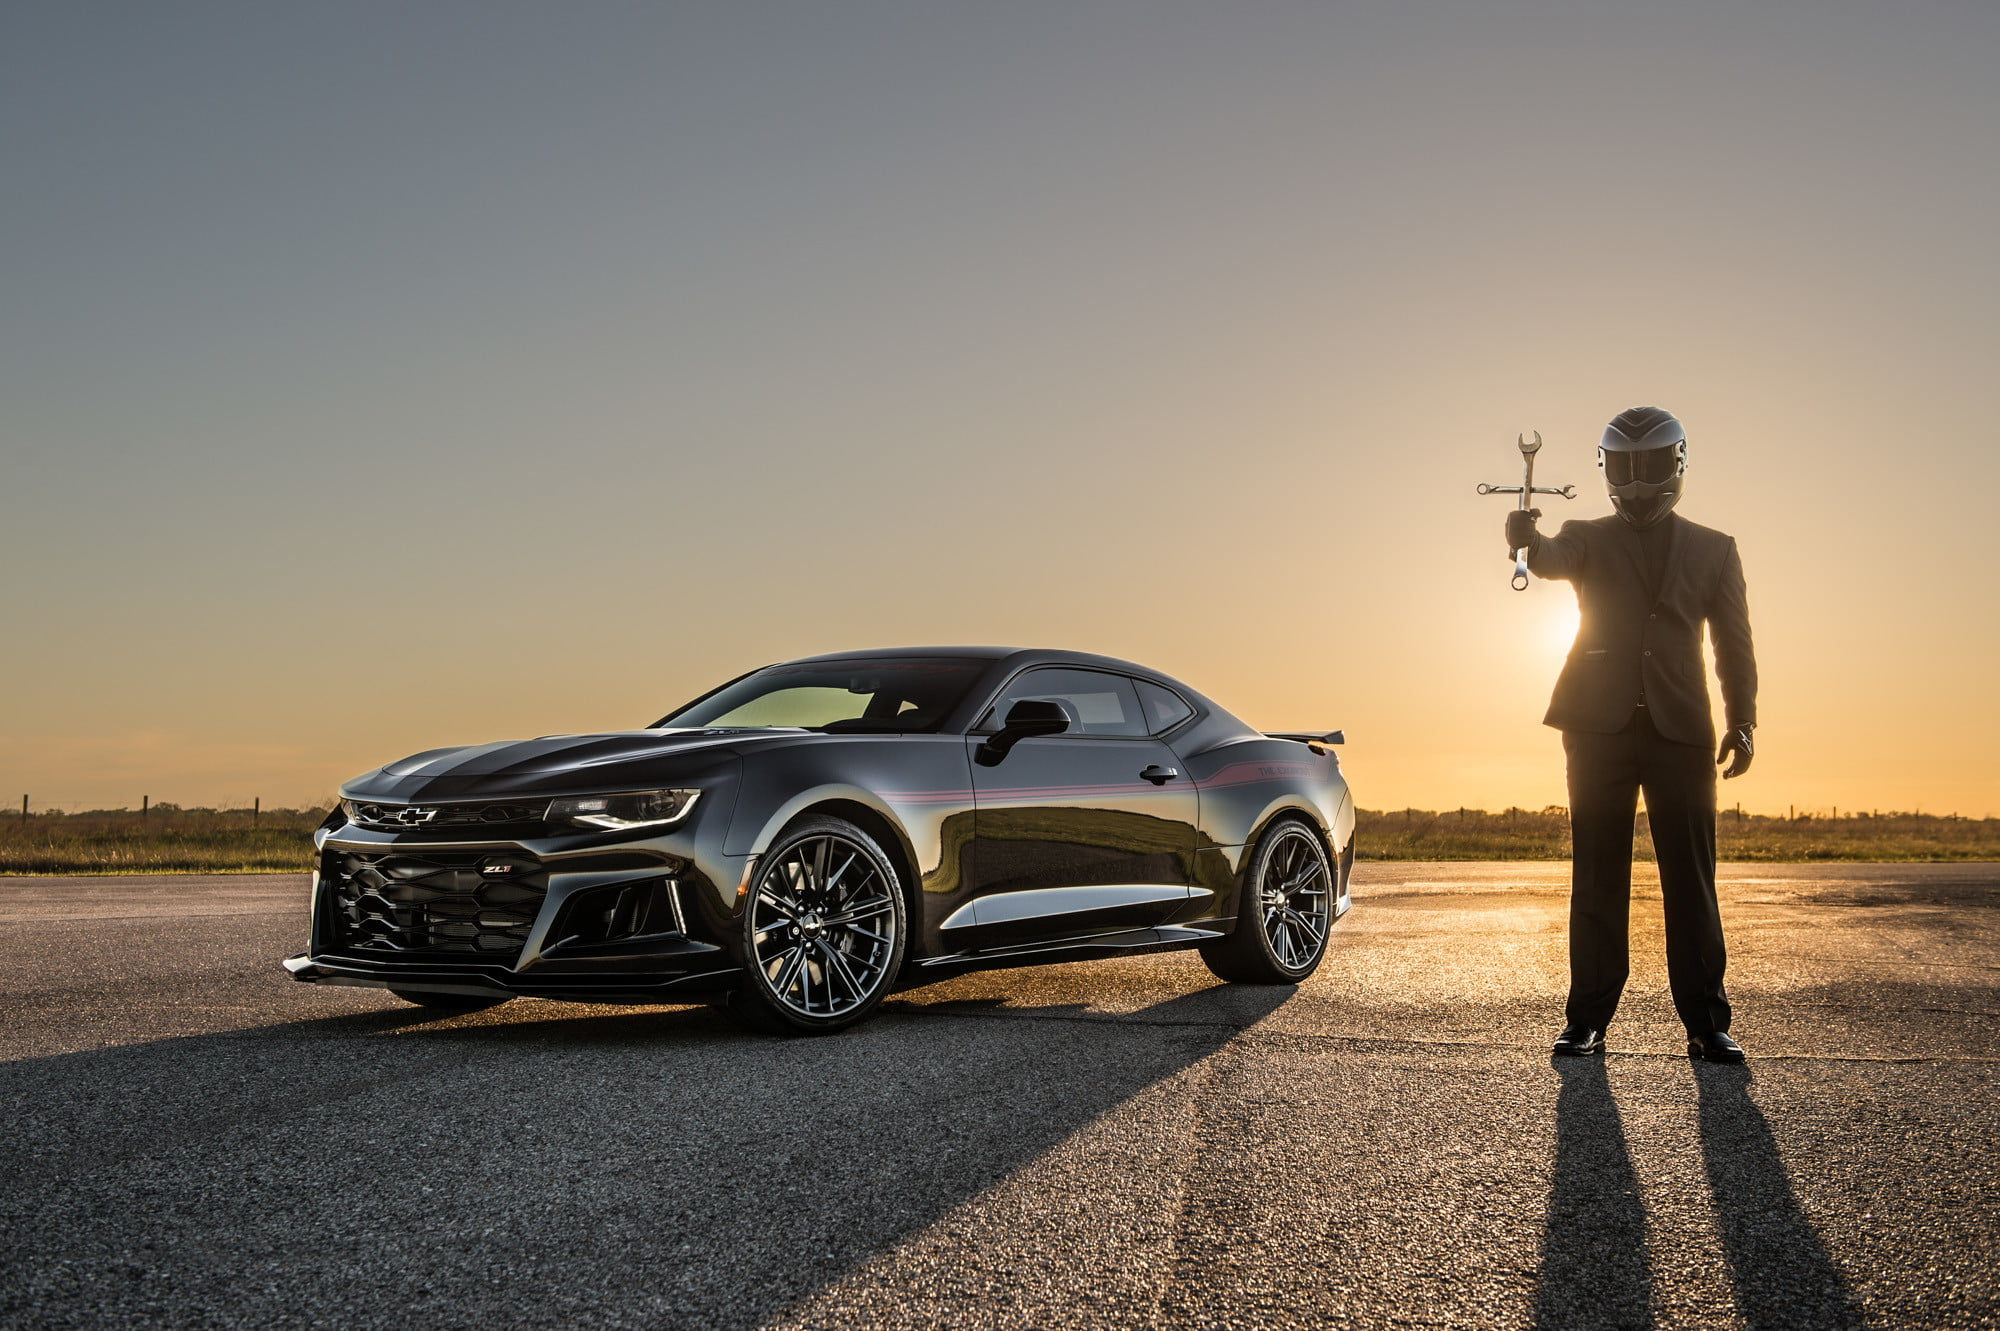 Demon-slaying Hennessey Exorcist Camaro Hits Top Speed of 217 mph ...